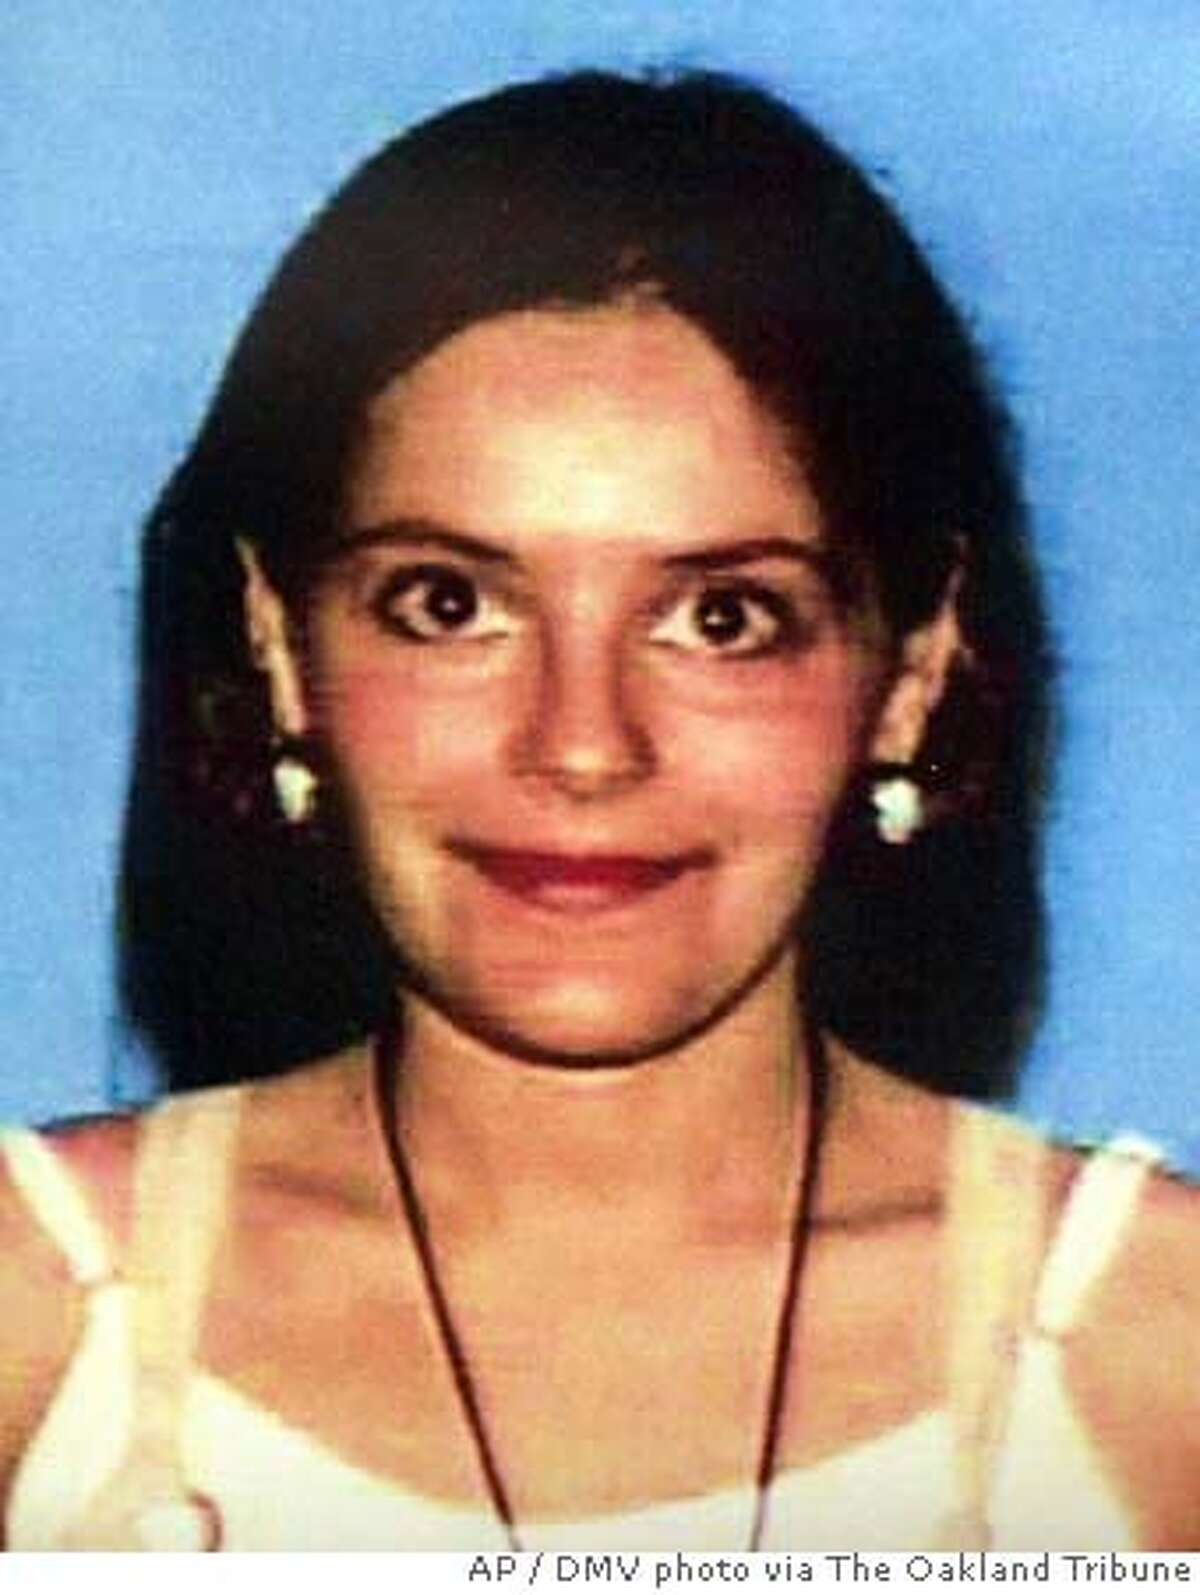 In this 1999 California DMV photo, Nina Reiser, who has been missing since Sept. 3, 2006, is shown On Tuesday, Oct. 10, 2006, Oakland, Calif., Deputy Chief Howard Jordan said they have charged her husband, Hans Reiser, on suspicion of murder. (AP Photo/DMV photo via The Oakland Tribune, ) Ran on: 10-13-2006 Hans Reiser Ran on: 10-13-2006 Hans Reiser Ran on: 10-13-2006 Hans Reiser Ran on: 11-29-2006 Hans Reiser (left) shakes hands with attorneys Daniel Horowitz, who quit the case, and William Du Bois (obscured) at his arraignment on a murder charge in Alameda County Superior Court. Ran on: 11-29-2006 Hans Reiser (left) shakes hands with attorneys Daniel Horowitz, who quit the case, and William Du Bois (obscured) at his arraign- ment on a murder charge in Alameda County Superior Court. Ran on: 11-29-2006 ALSO Ran on: 12-14-2006 Nina Reiser Ran on: 12-21-2006 Hans Reiser (left) shakes hands with attorneys Daniel Horowitz (front right) and William Du Bois in an Oakland courtroom. ALSO Ran on: 01-03-2007 ALSO Ran on: 01-19-2007 LOCALS PLEASE CREDIT/MAGS OUT